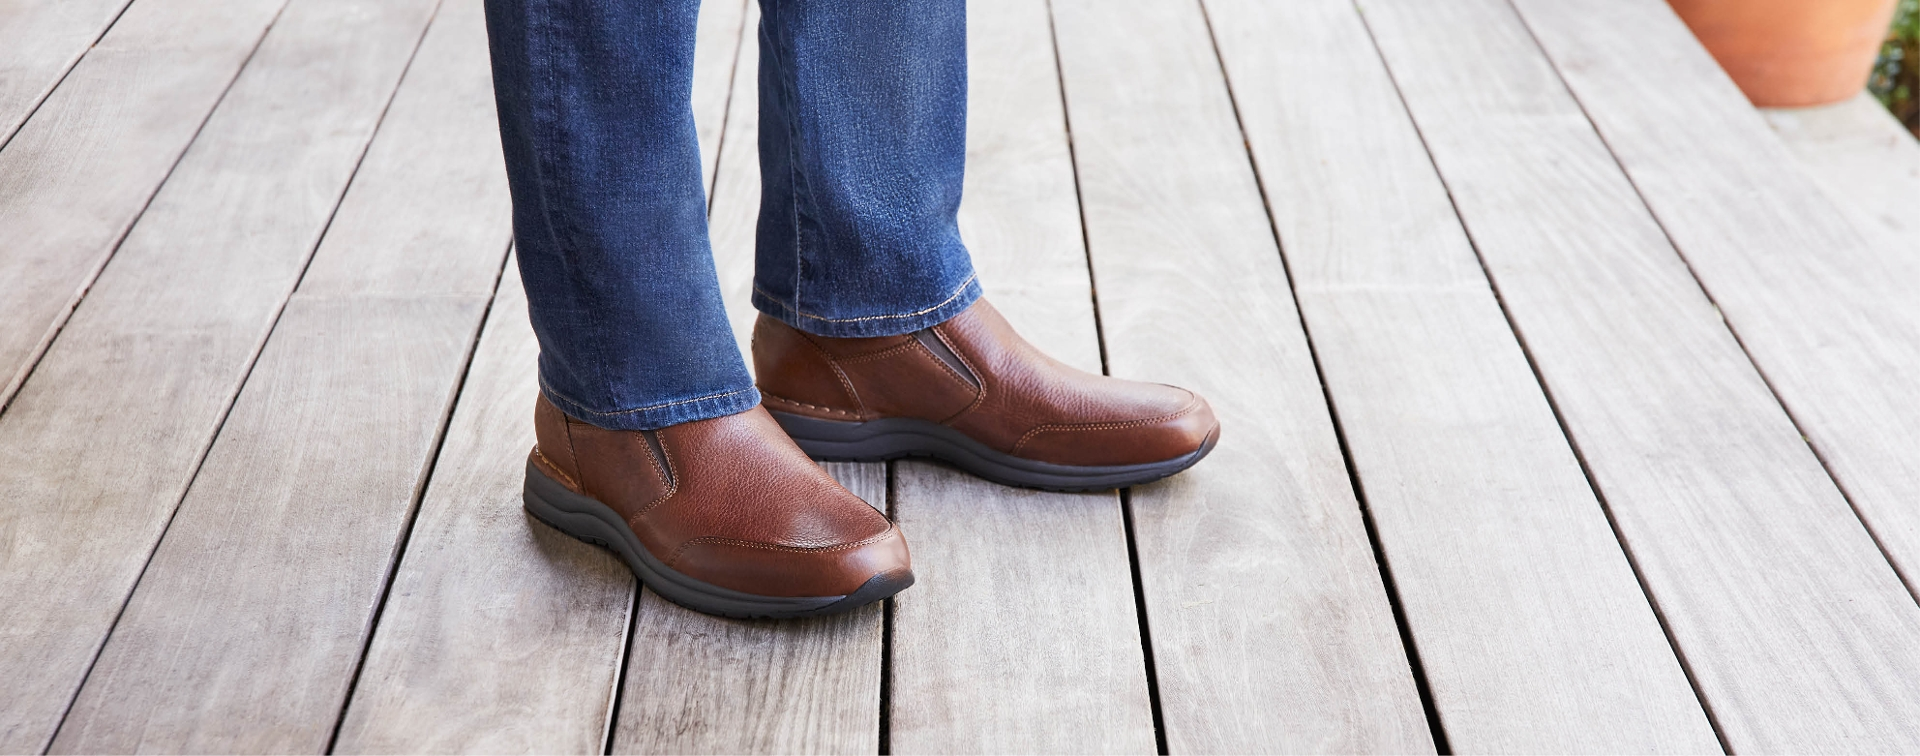 Close up shot of man wearing brown shoes